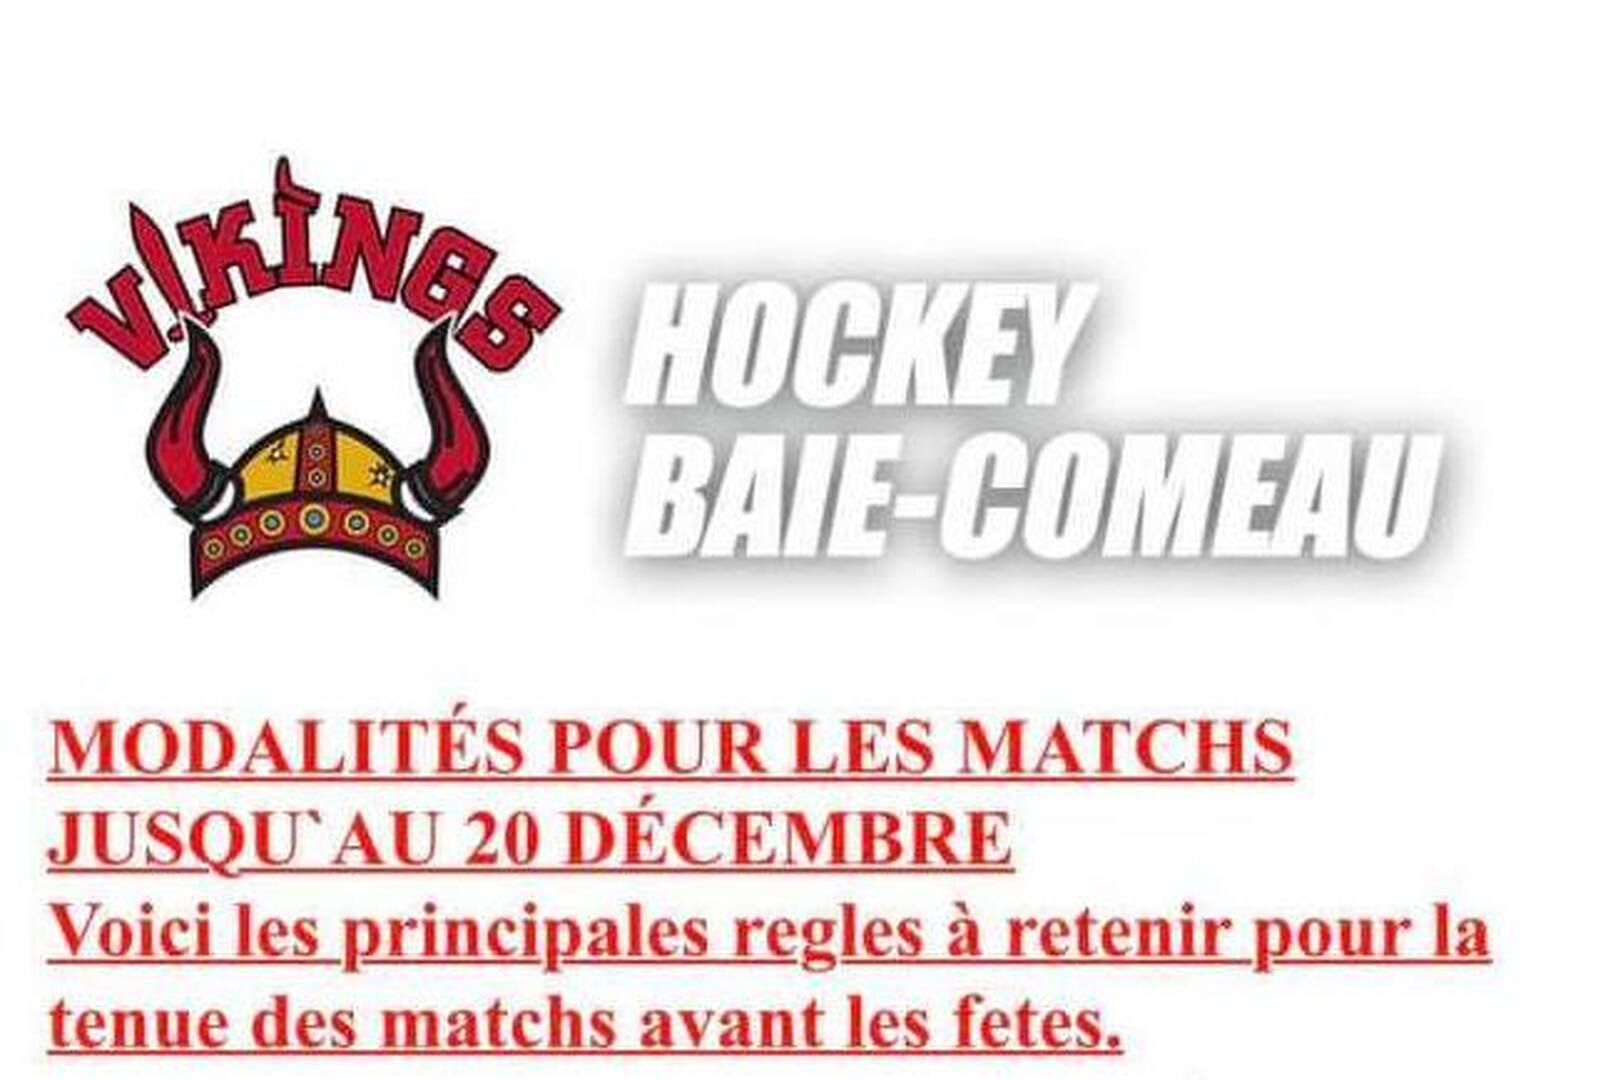 Match hors concours